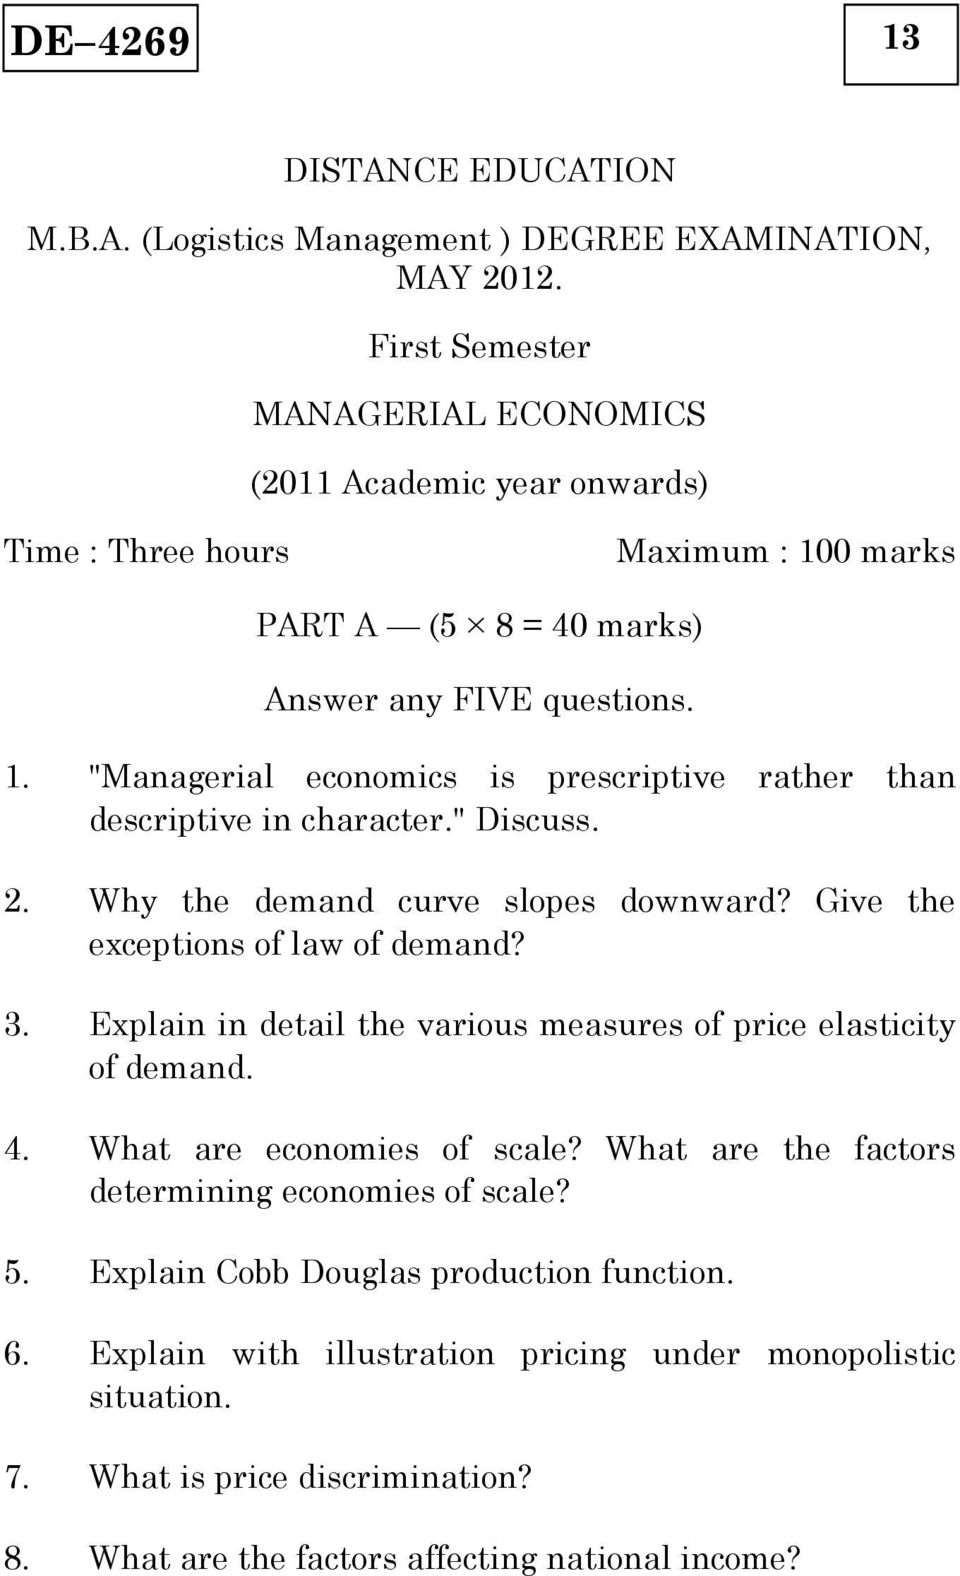 """ Discuss.. Why the demand curve slopes downward? Give the exceptions of law of demand? 3. Explain in detail the various measures of price elasticity of demand. 4."